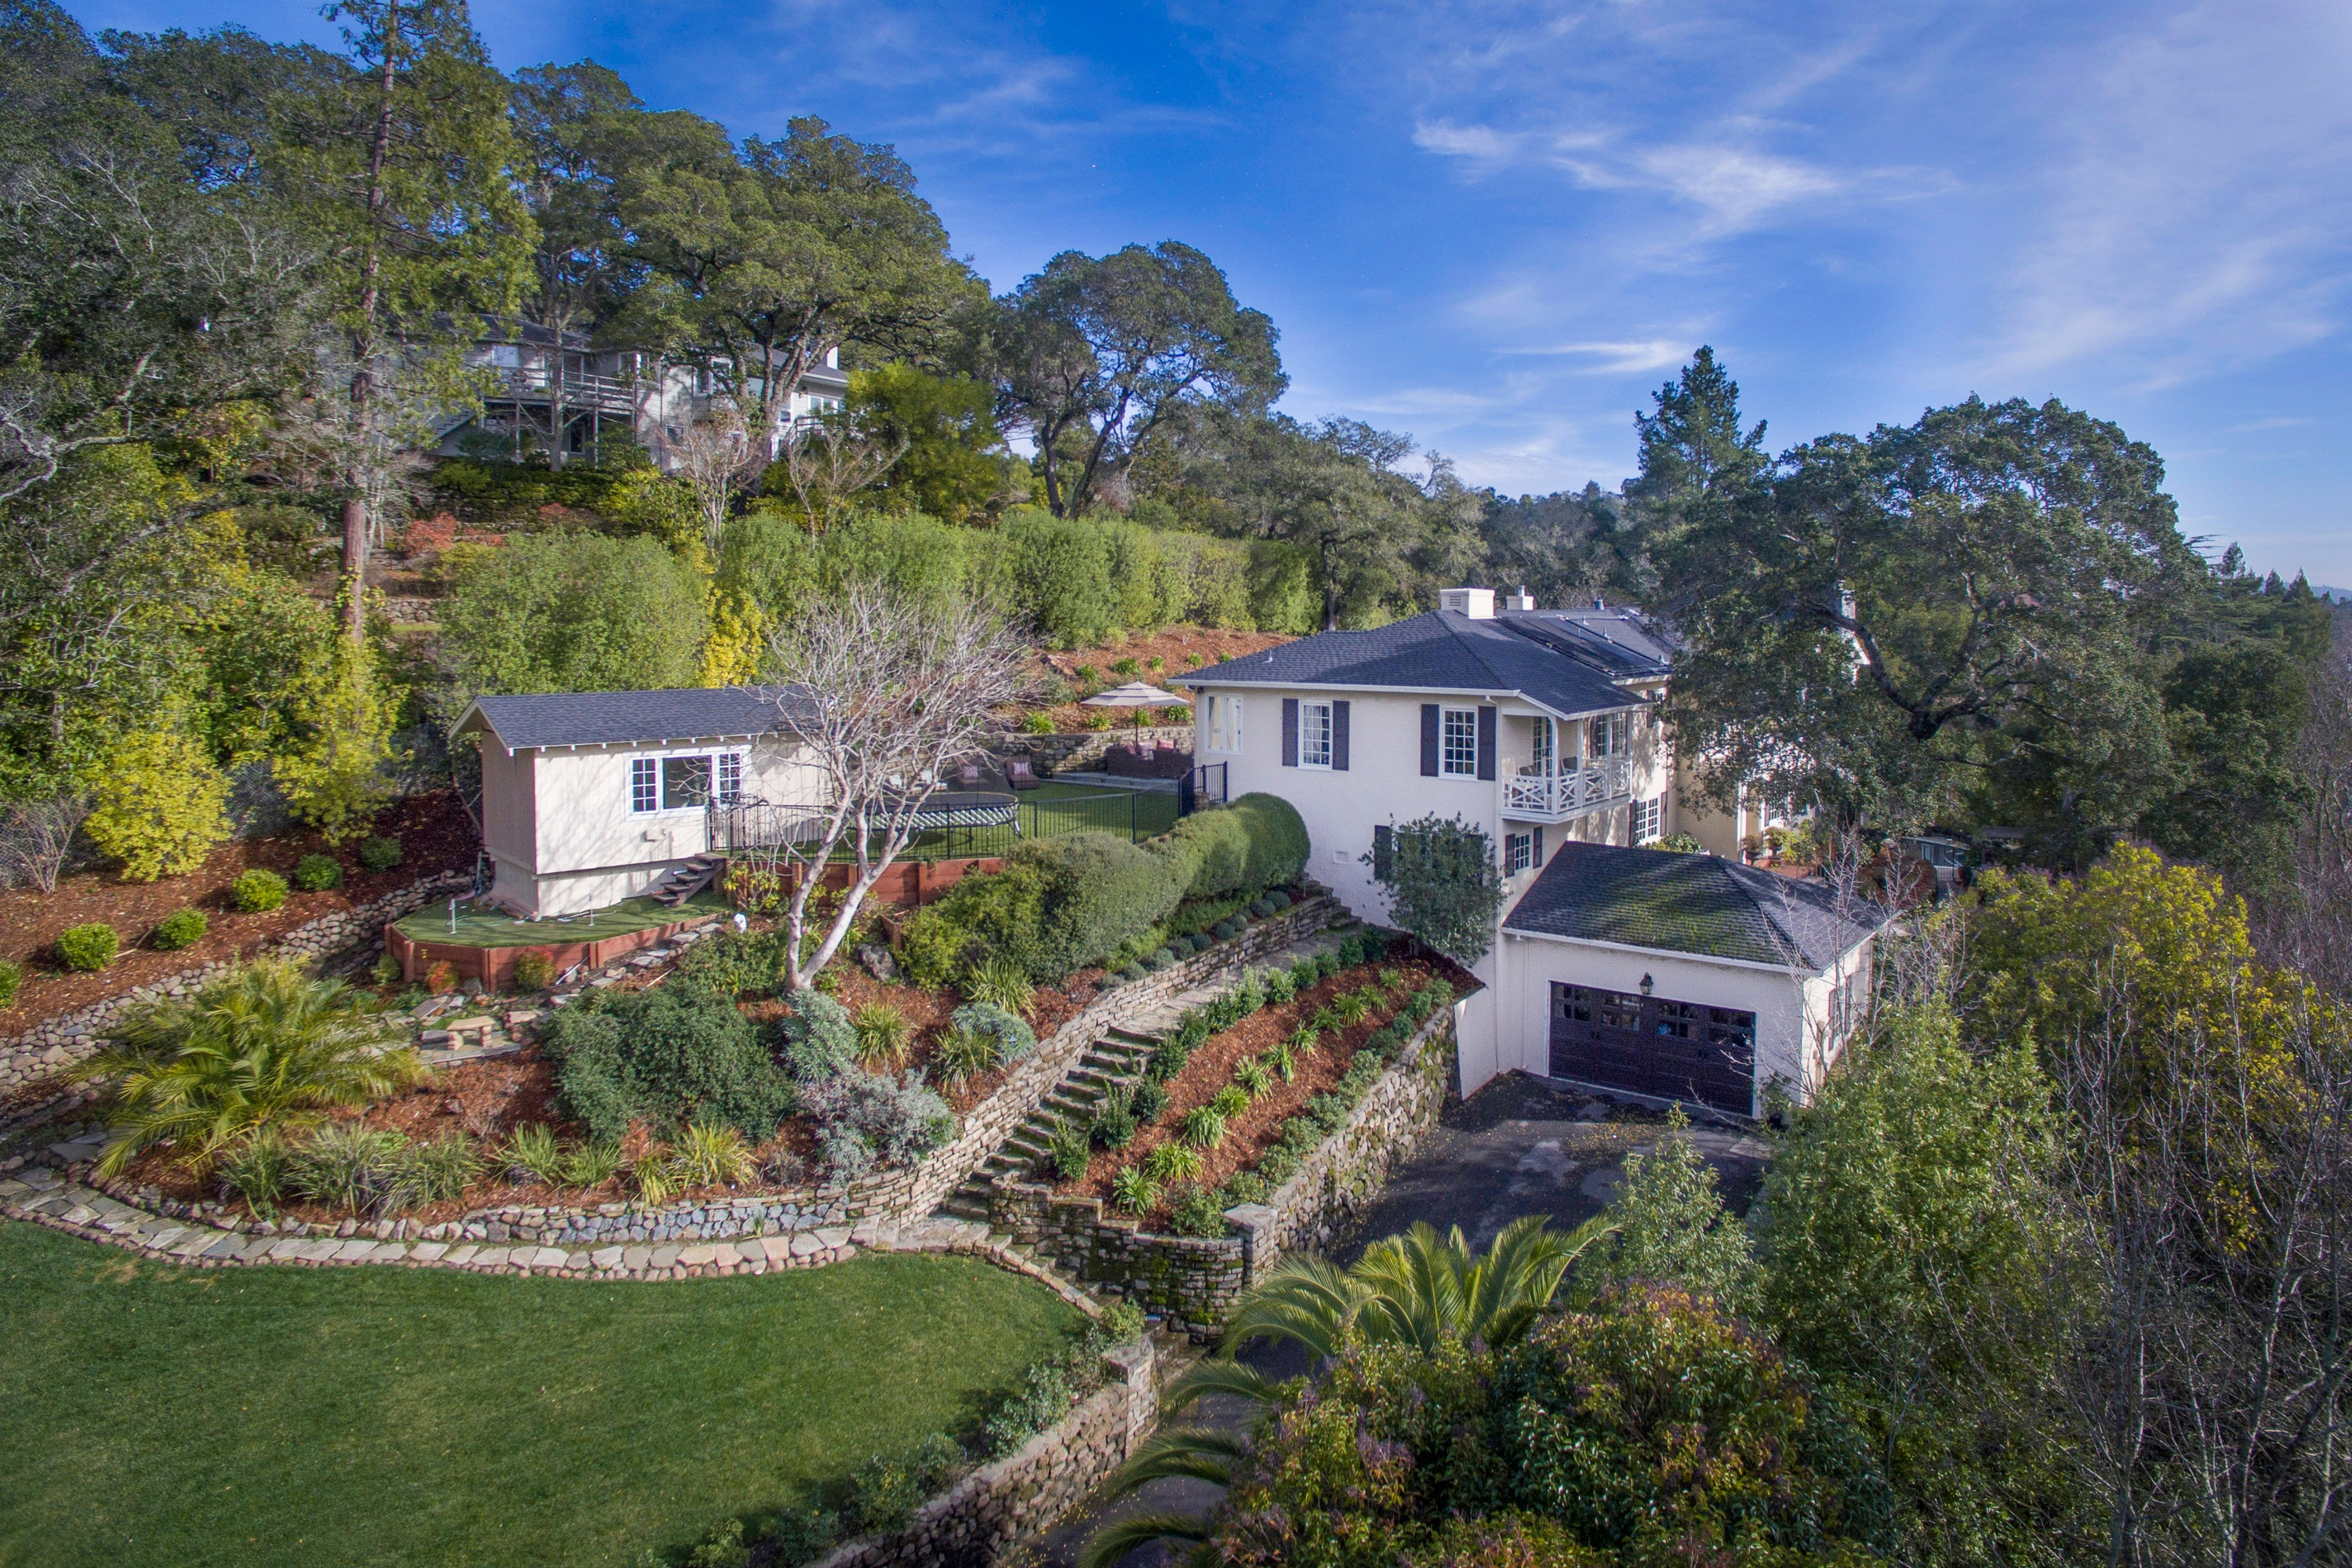 Single Family Home for Sale at Classic East Coast-Style Residence 46 Sir Francis Drake Blvd. Ross, California 94957 United States